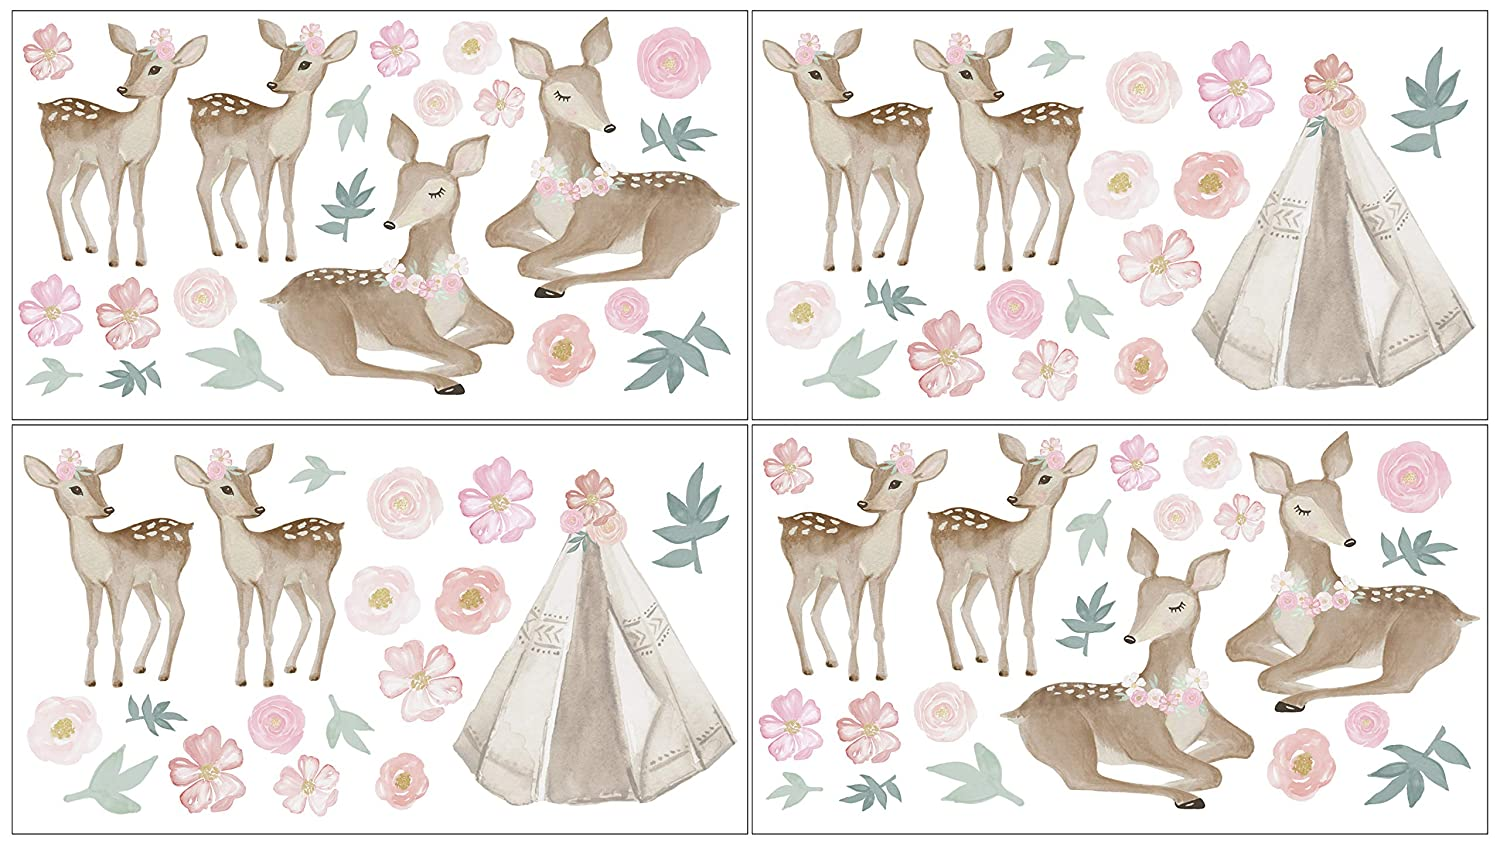 Sweet Jojo Designs Boho Woodland Deer Floral Peel and Stick Wall Decal Stickers Art Nursery Decor - Set of 4 Sheets - Blush Pink, Mint Green and White